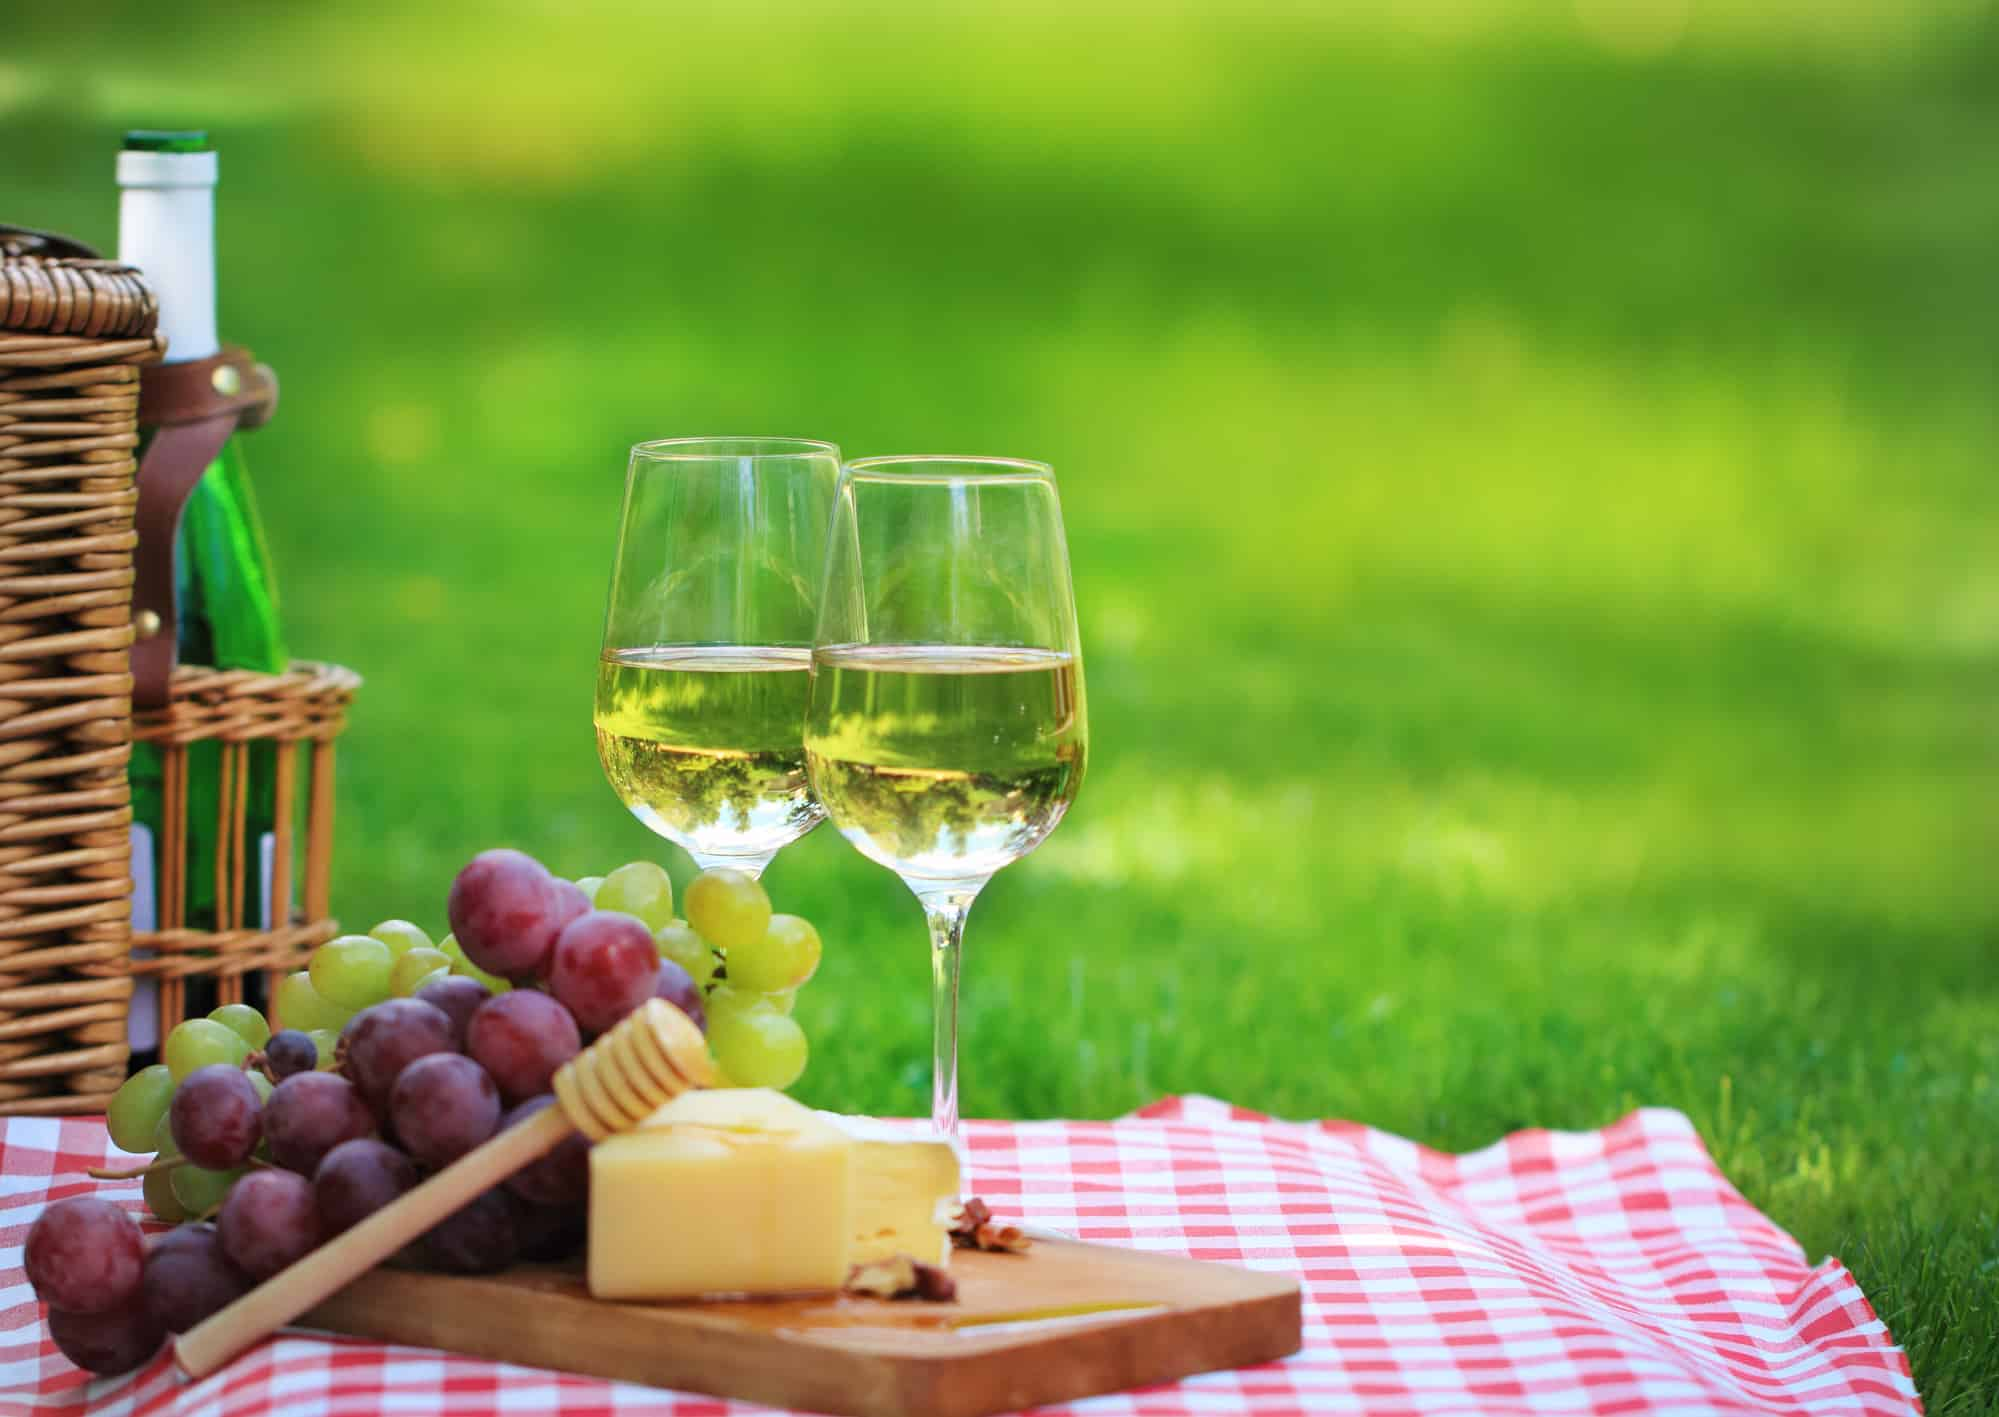 Various sorts of cheese, grapes and two glasses of the white wine